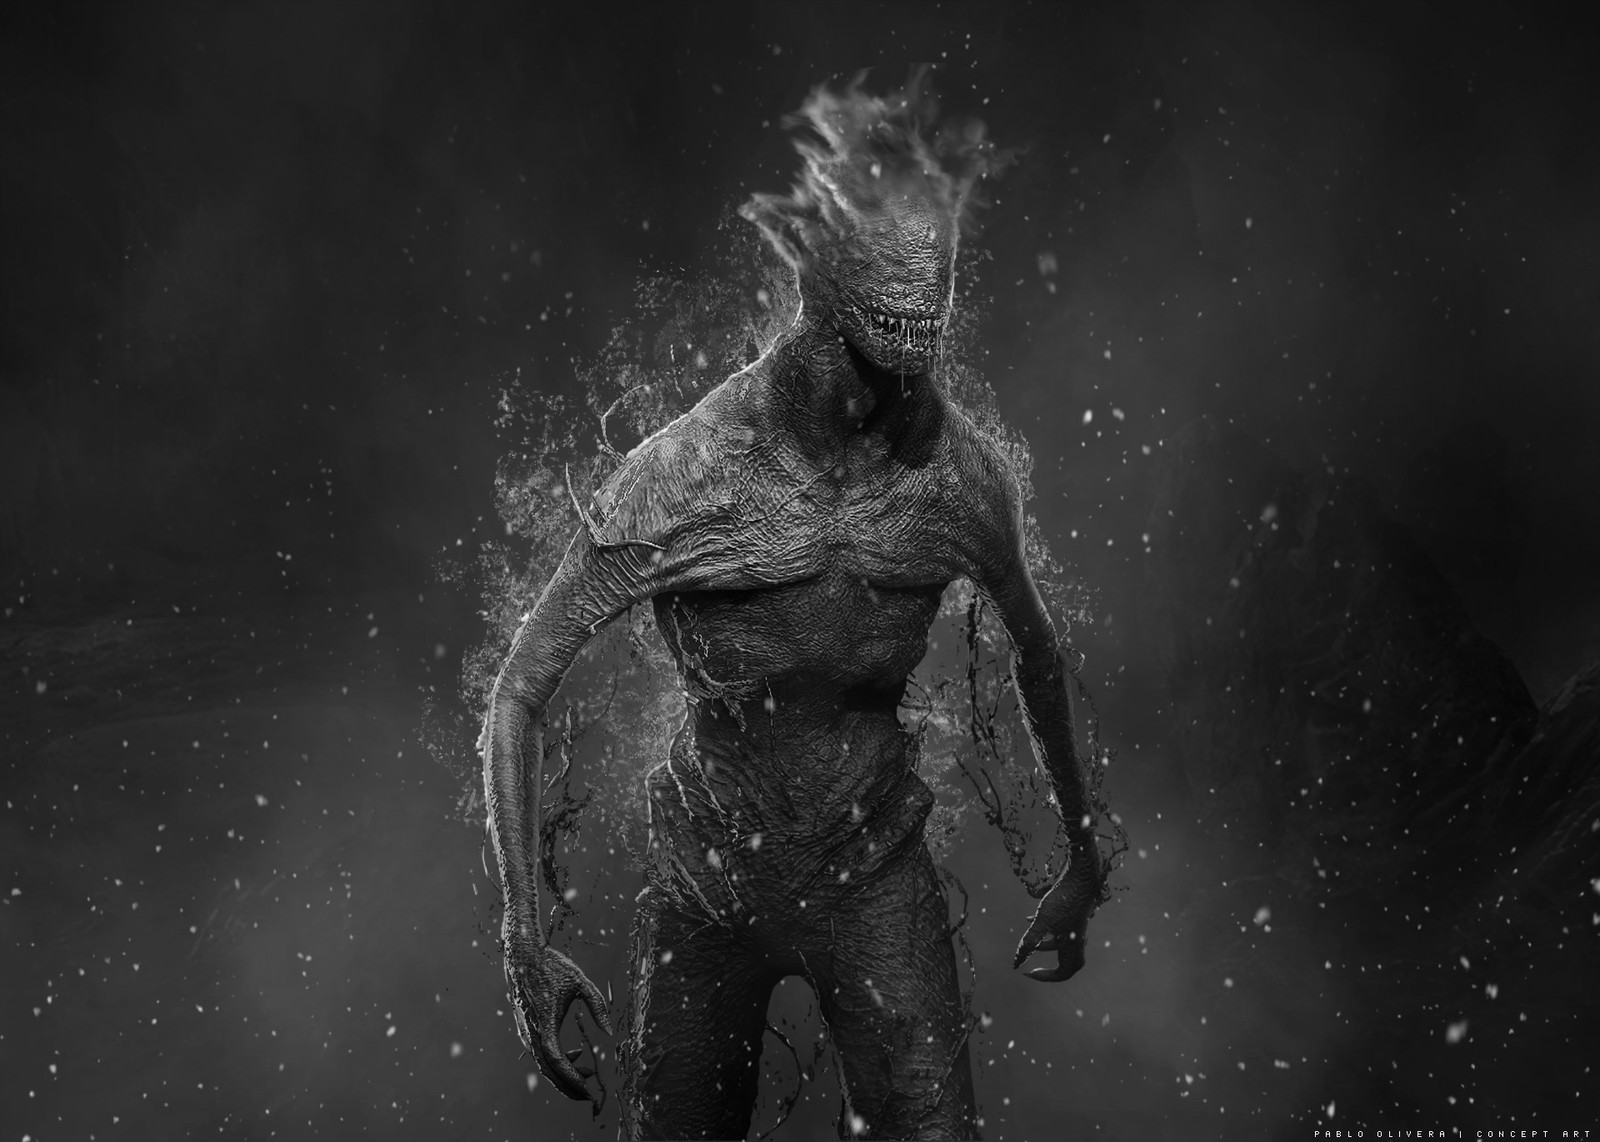 Creature Design for Uncanny Valley ( Sci-Fi short film )